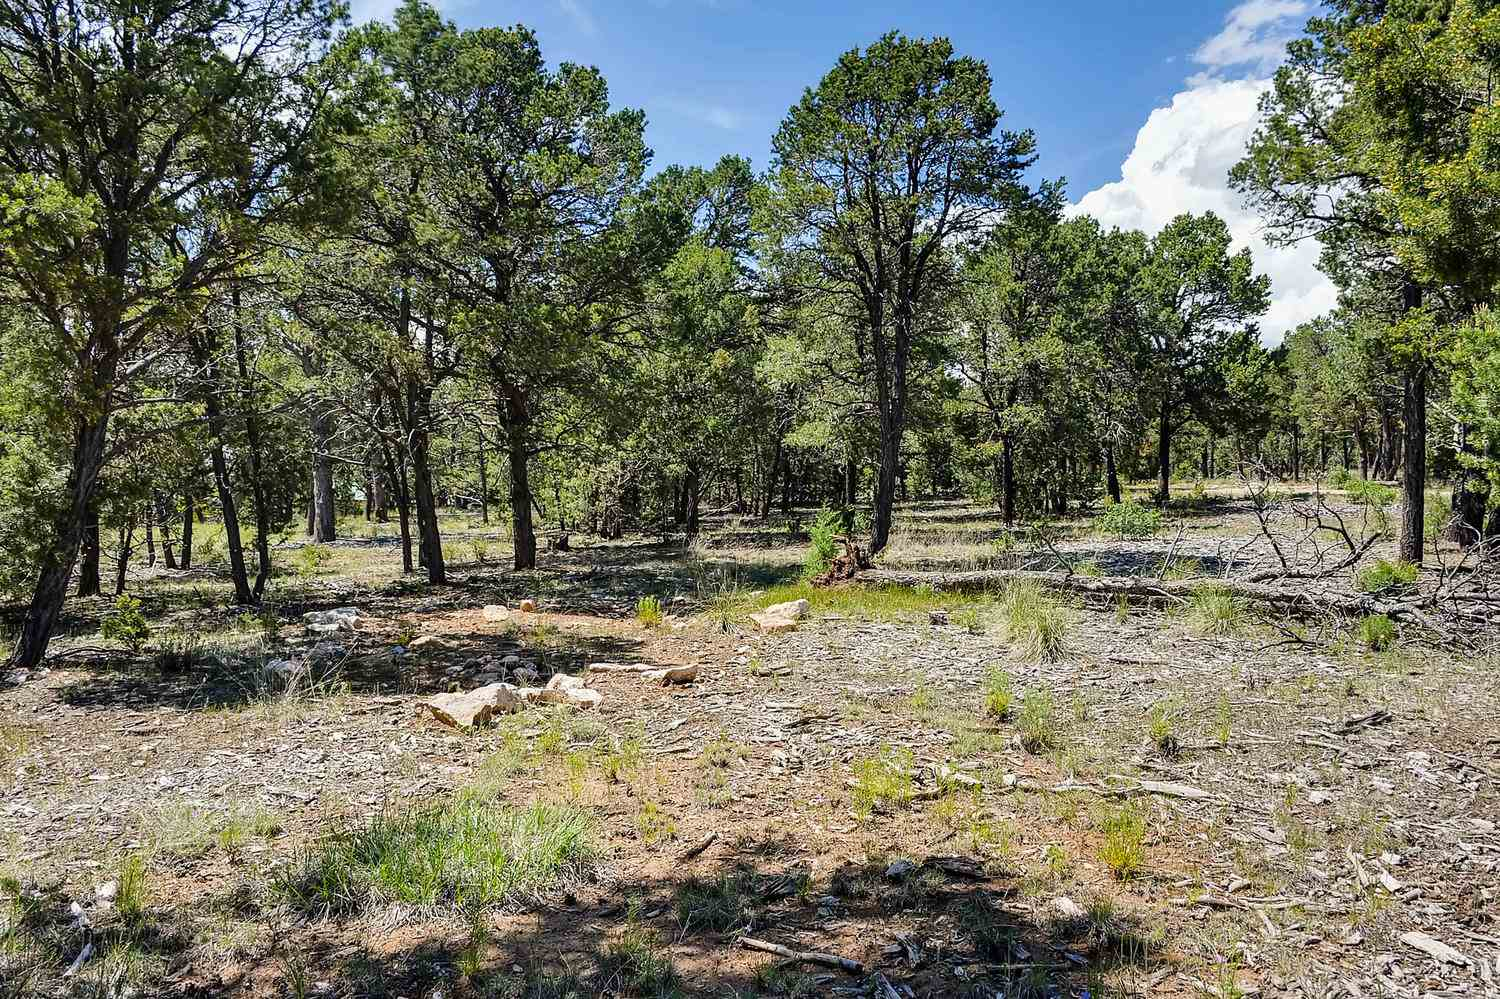 47 Silver Feather Tr Pecos, NM 87552